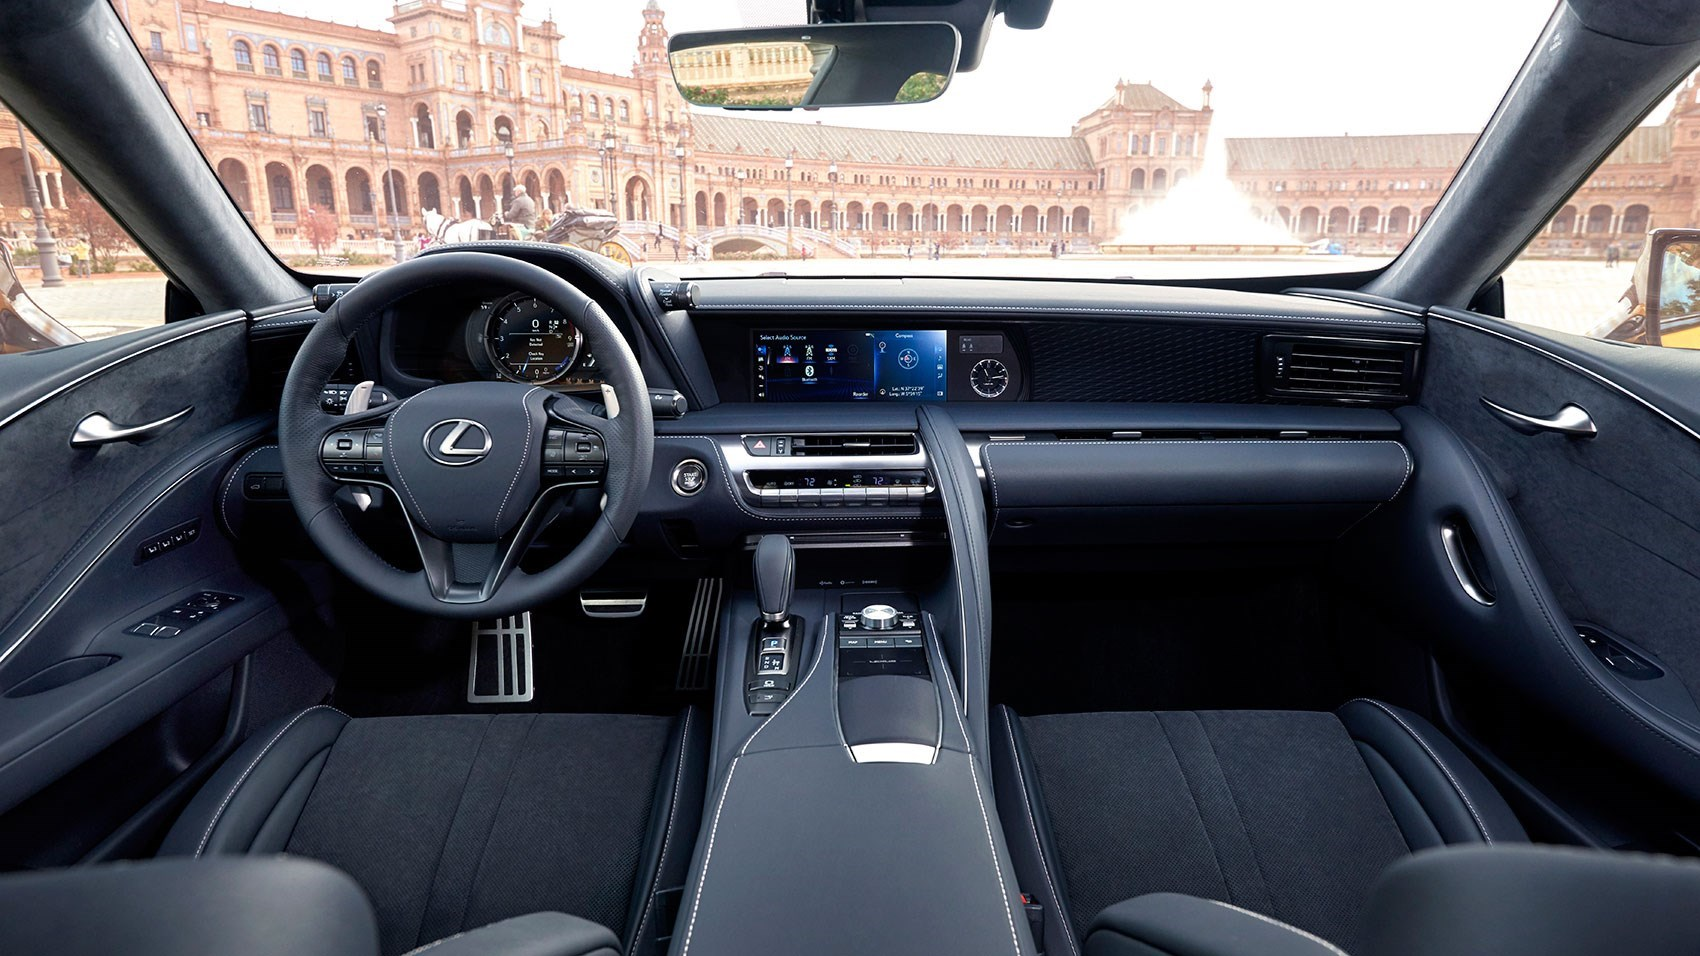 Lexus LC interior and cabin